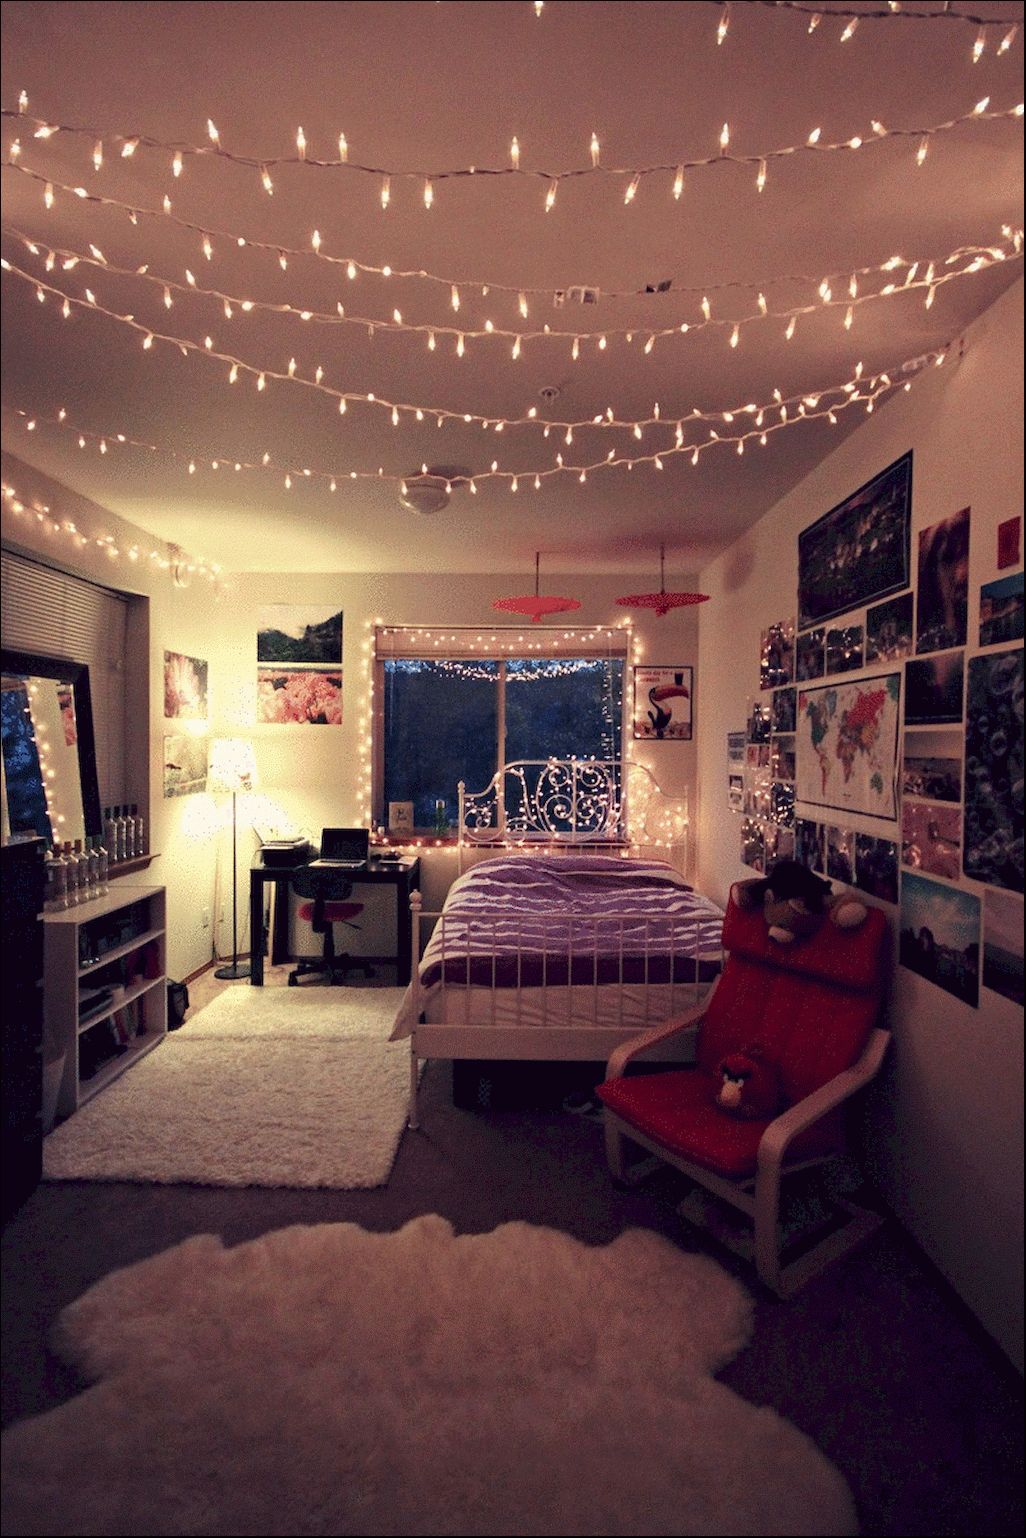 Excellent Picture Of College Decor Apartment College Decor Apartment Brilliant Cool Apartment Decorating Ideas Wit Awesome Bedrooms Apartment Decor Dream Rooms